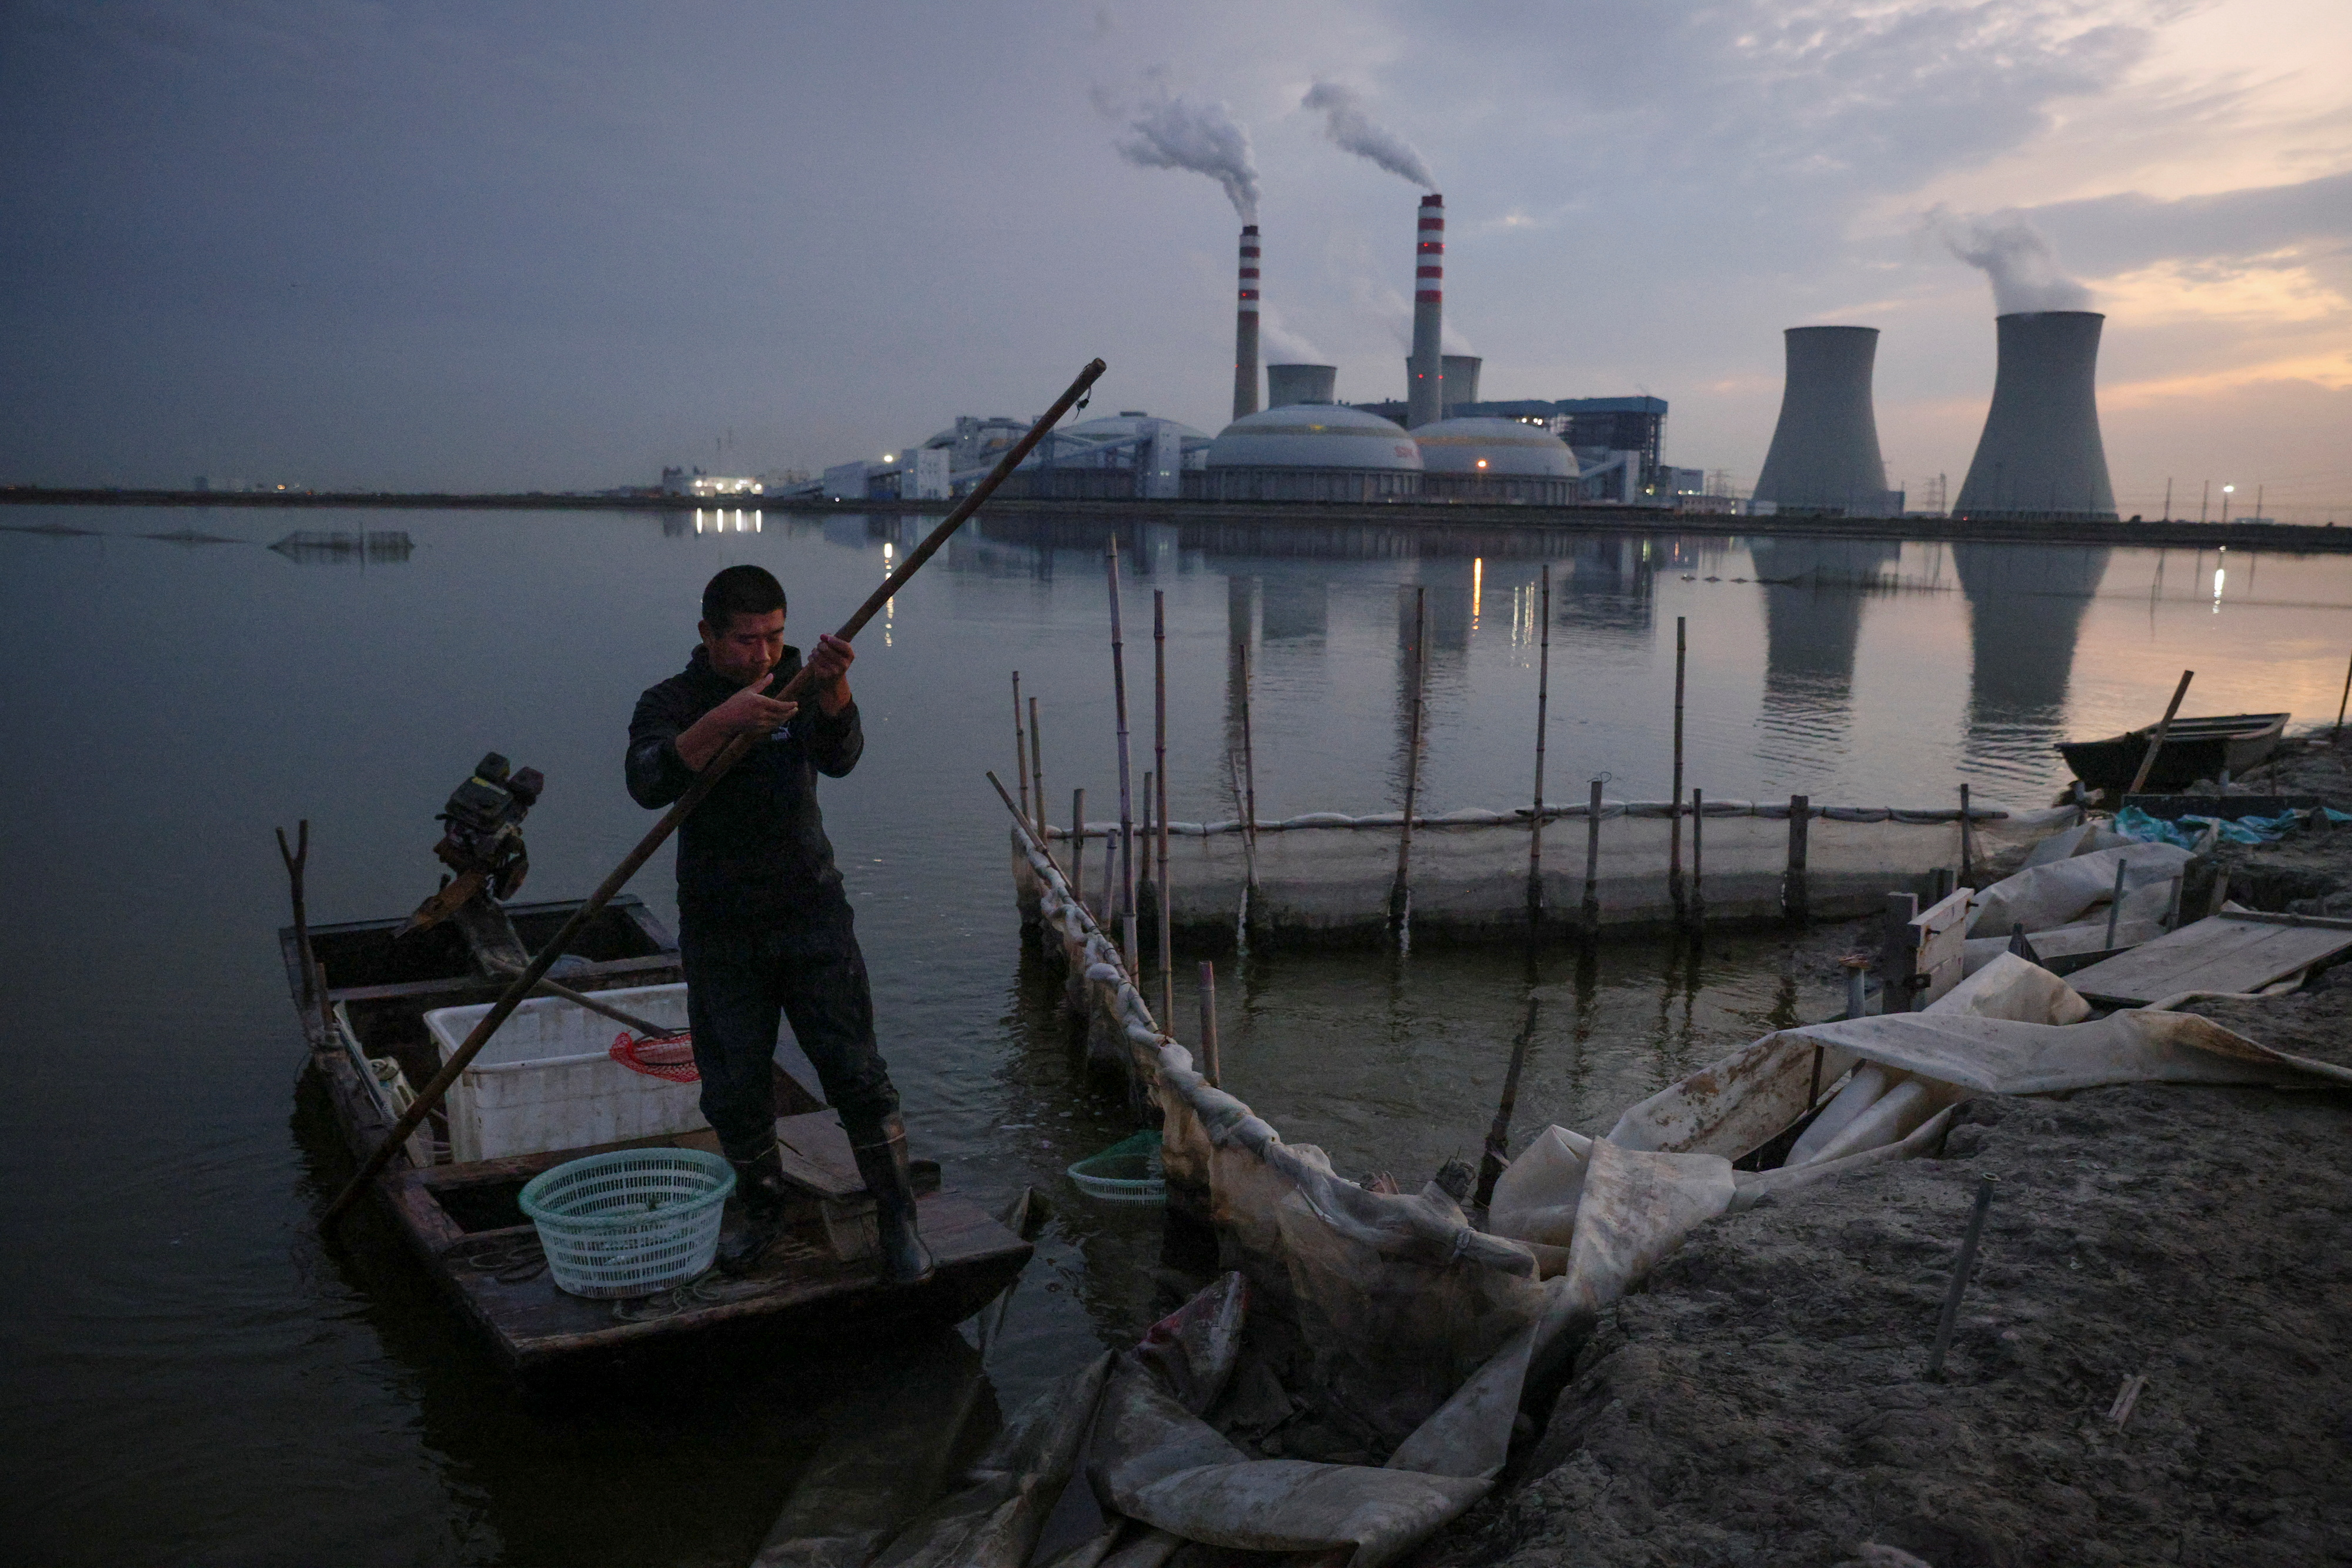 A fisherman punts a boat on a lake in front of a power plant of the State Development and Investment Corporation (SDIC) outside Tianjin, China, October 14, 2021. REUTERS/Thomas Peter